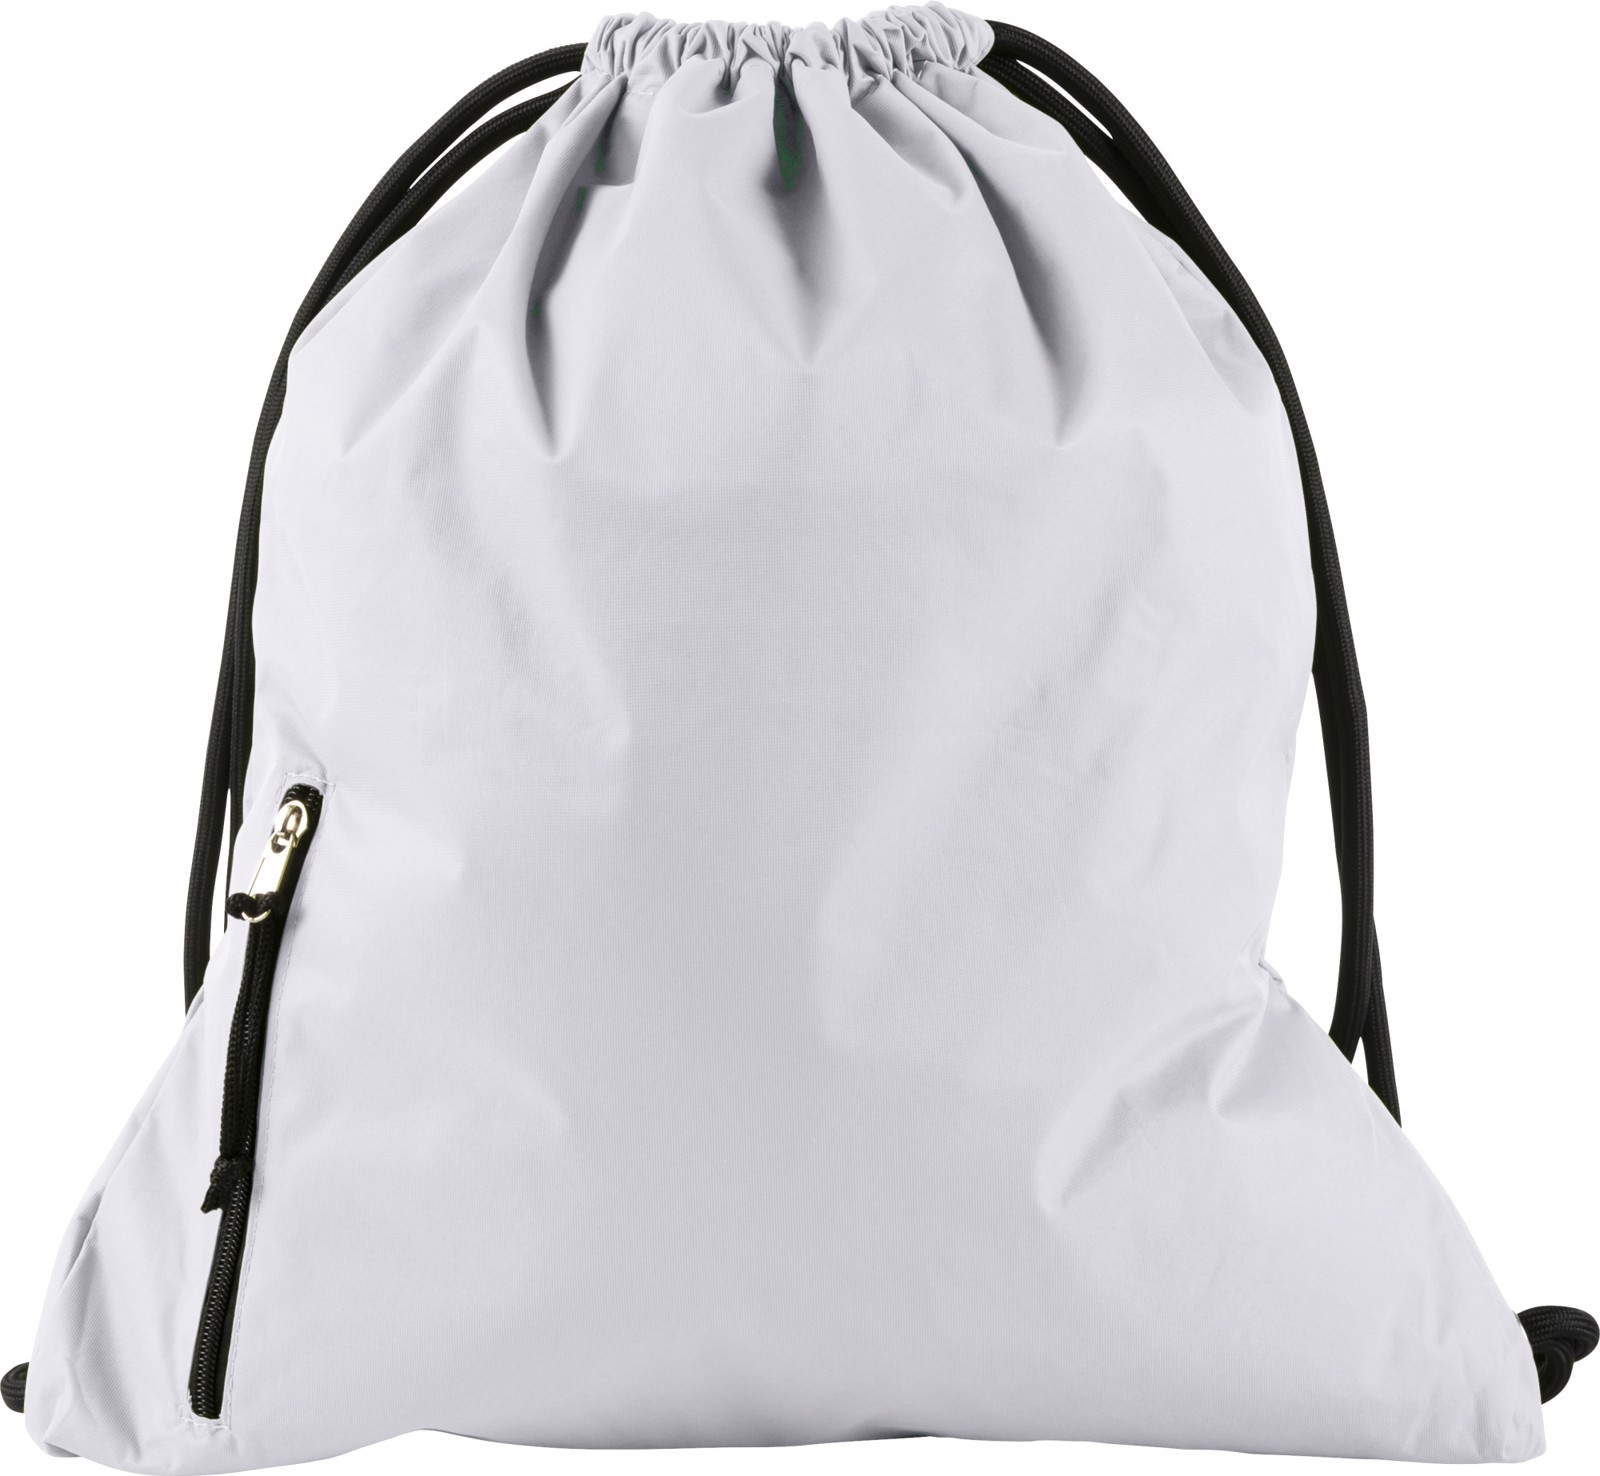 Pongee (190T) drawstring backpack - White